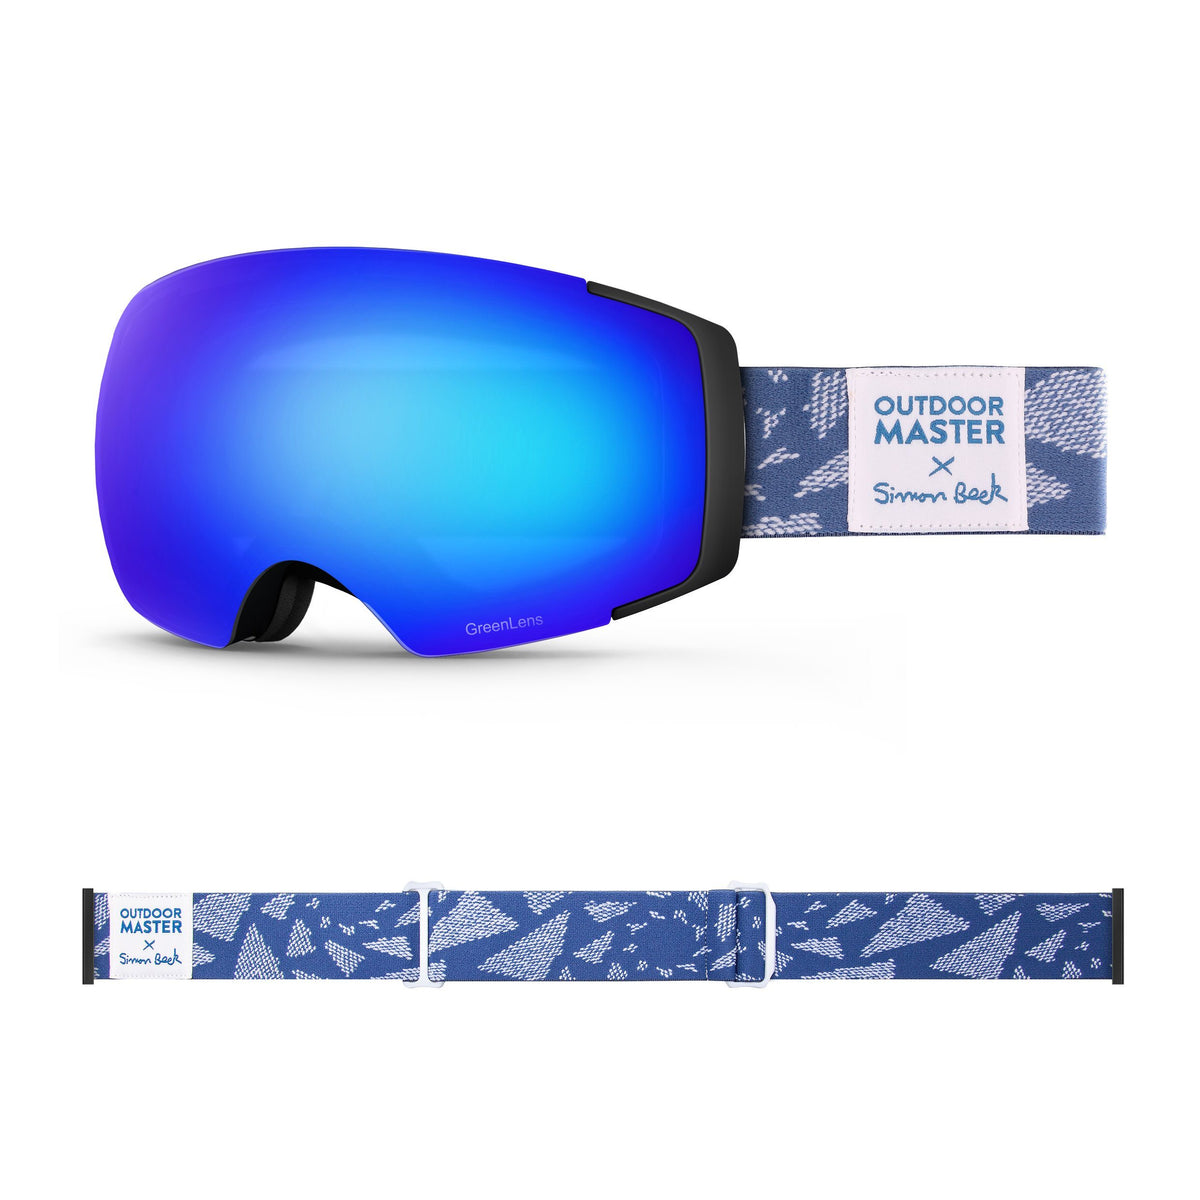 OutdoorMaster x Simon Beck Ski Goggles Pro Series - Snowshoeing Art Limited Edition OutdoorMaster GreenLens VLT 15% TAC Grey with REVO Blue Polarized Flying Triangles